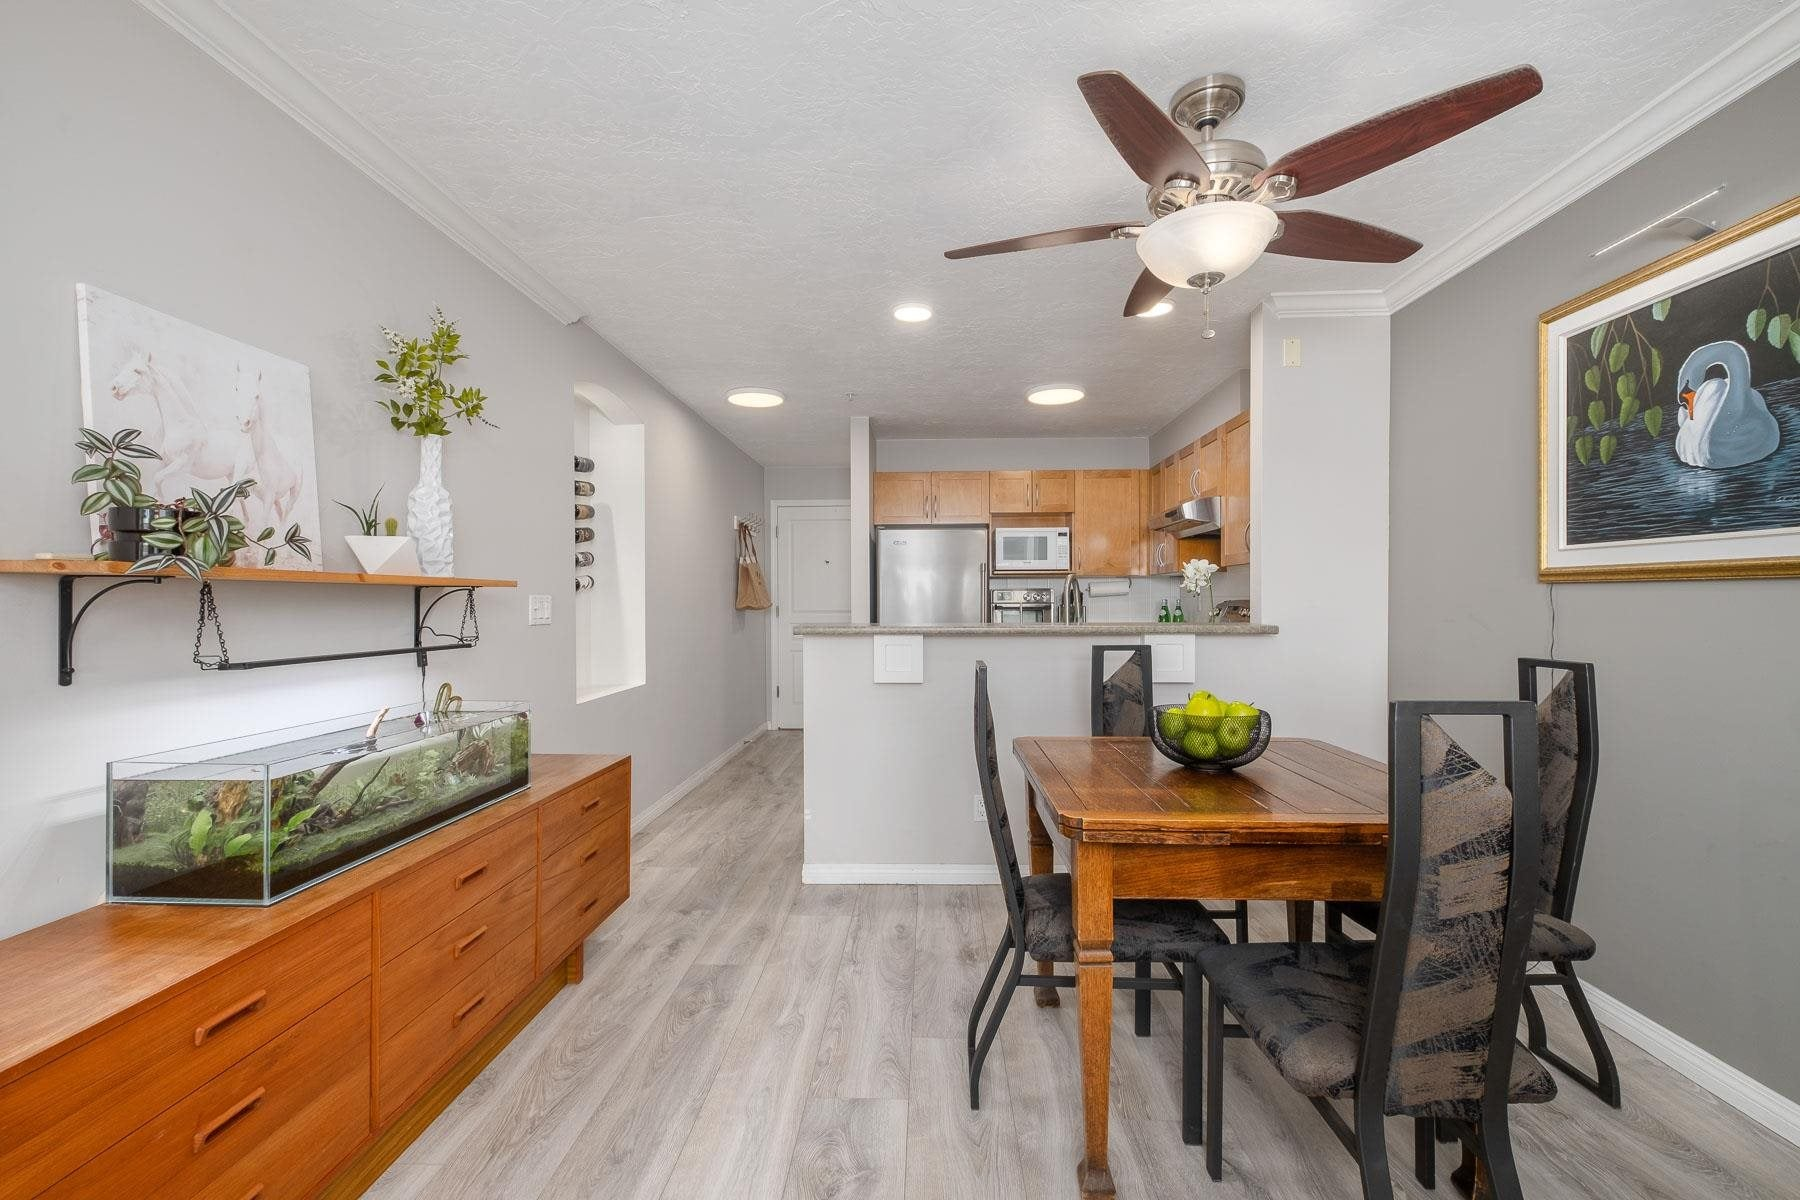 205 333 E 1ST STREET - Lower Lonsdale Apartment/Condo for sale, 1 Bedroom (R2618010) - #14